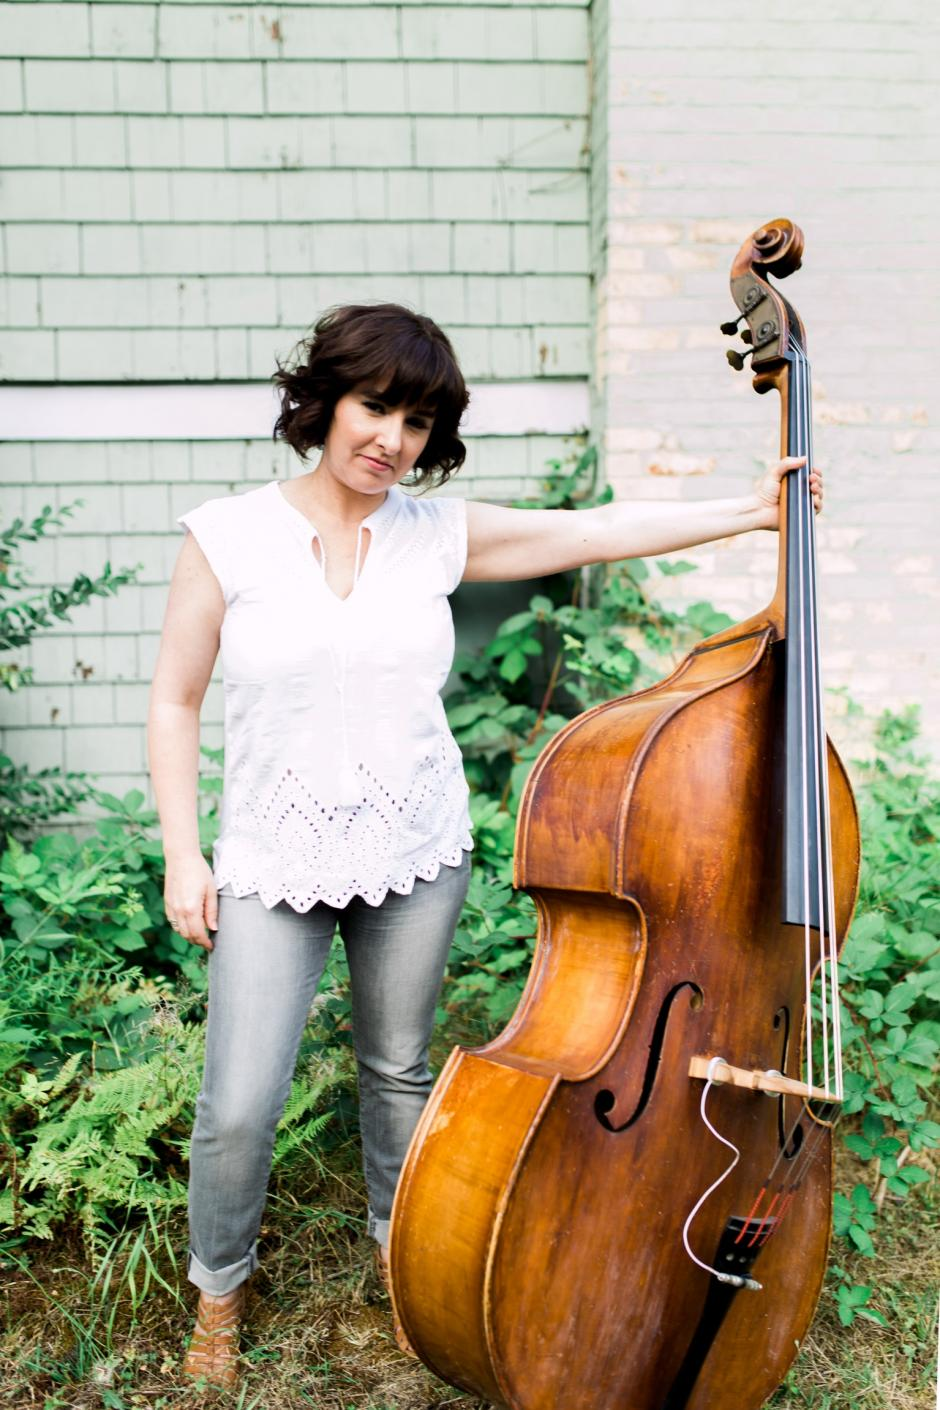 Jodi Proznick stands in front of plants and shrubs while holding her bass with one hand.